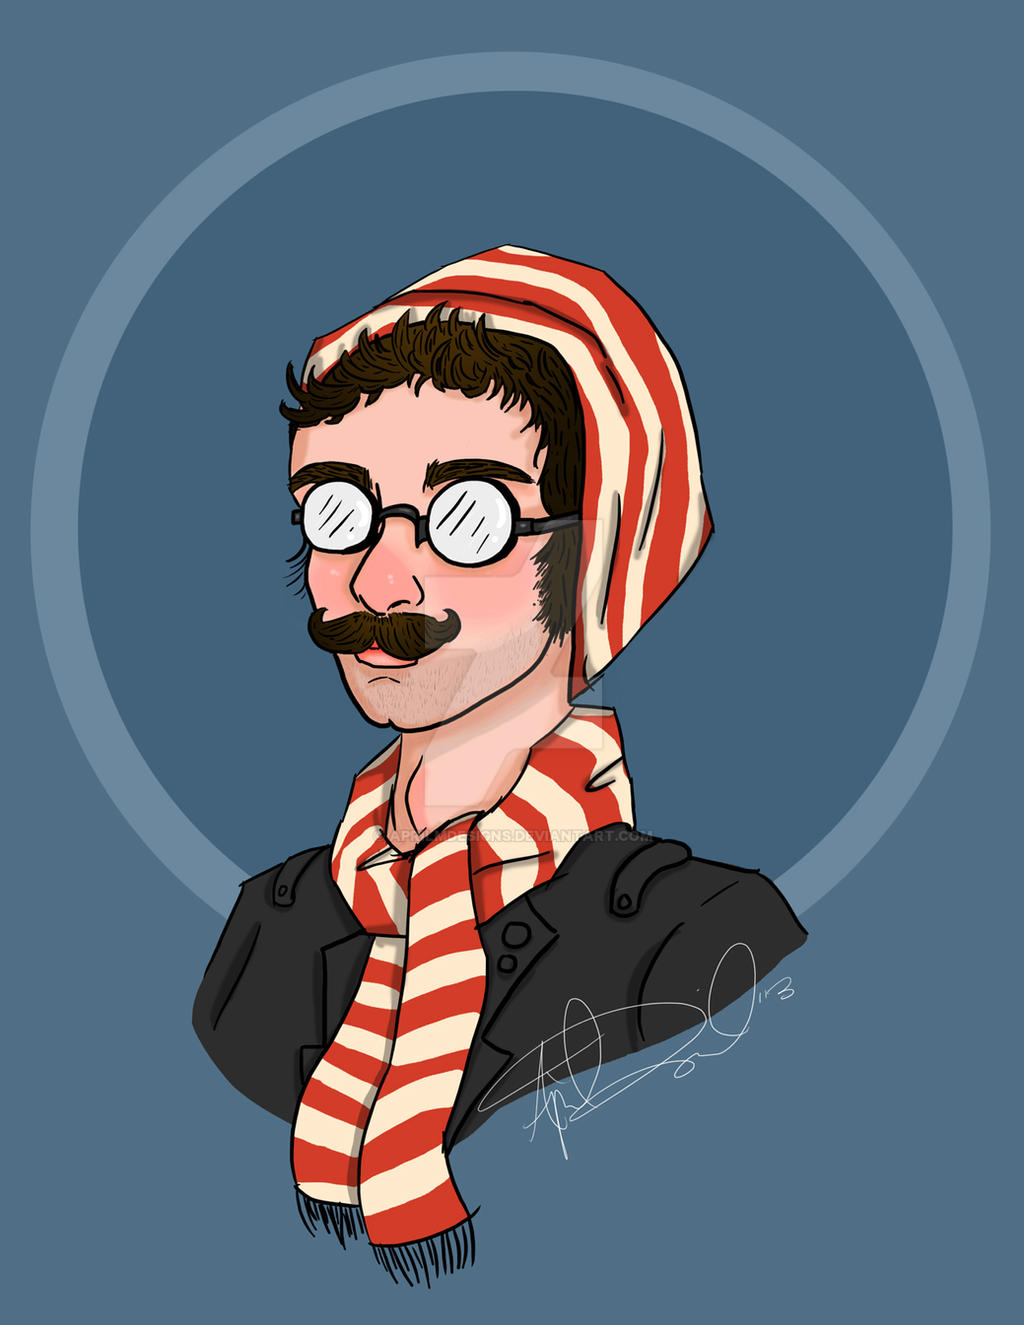 Hipster Waldo by aprilmdesigns